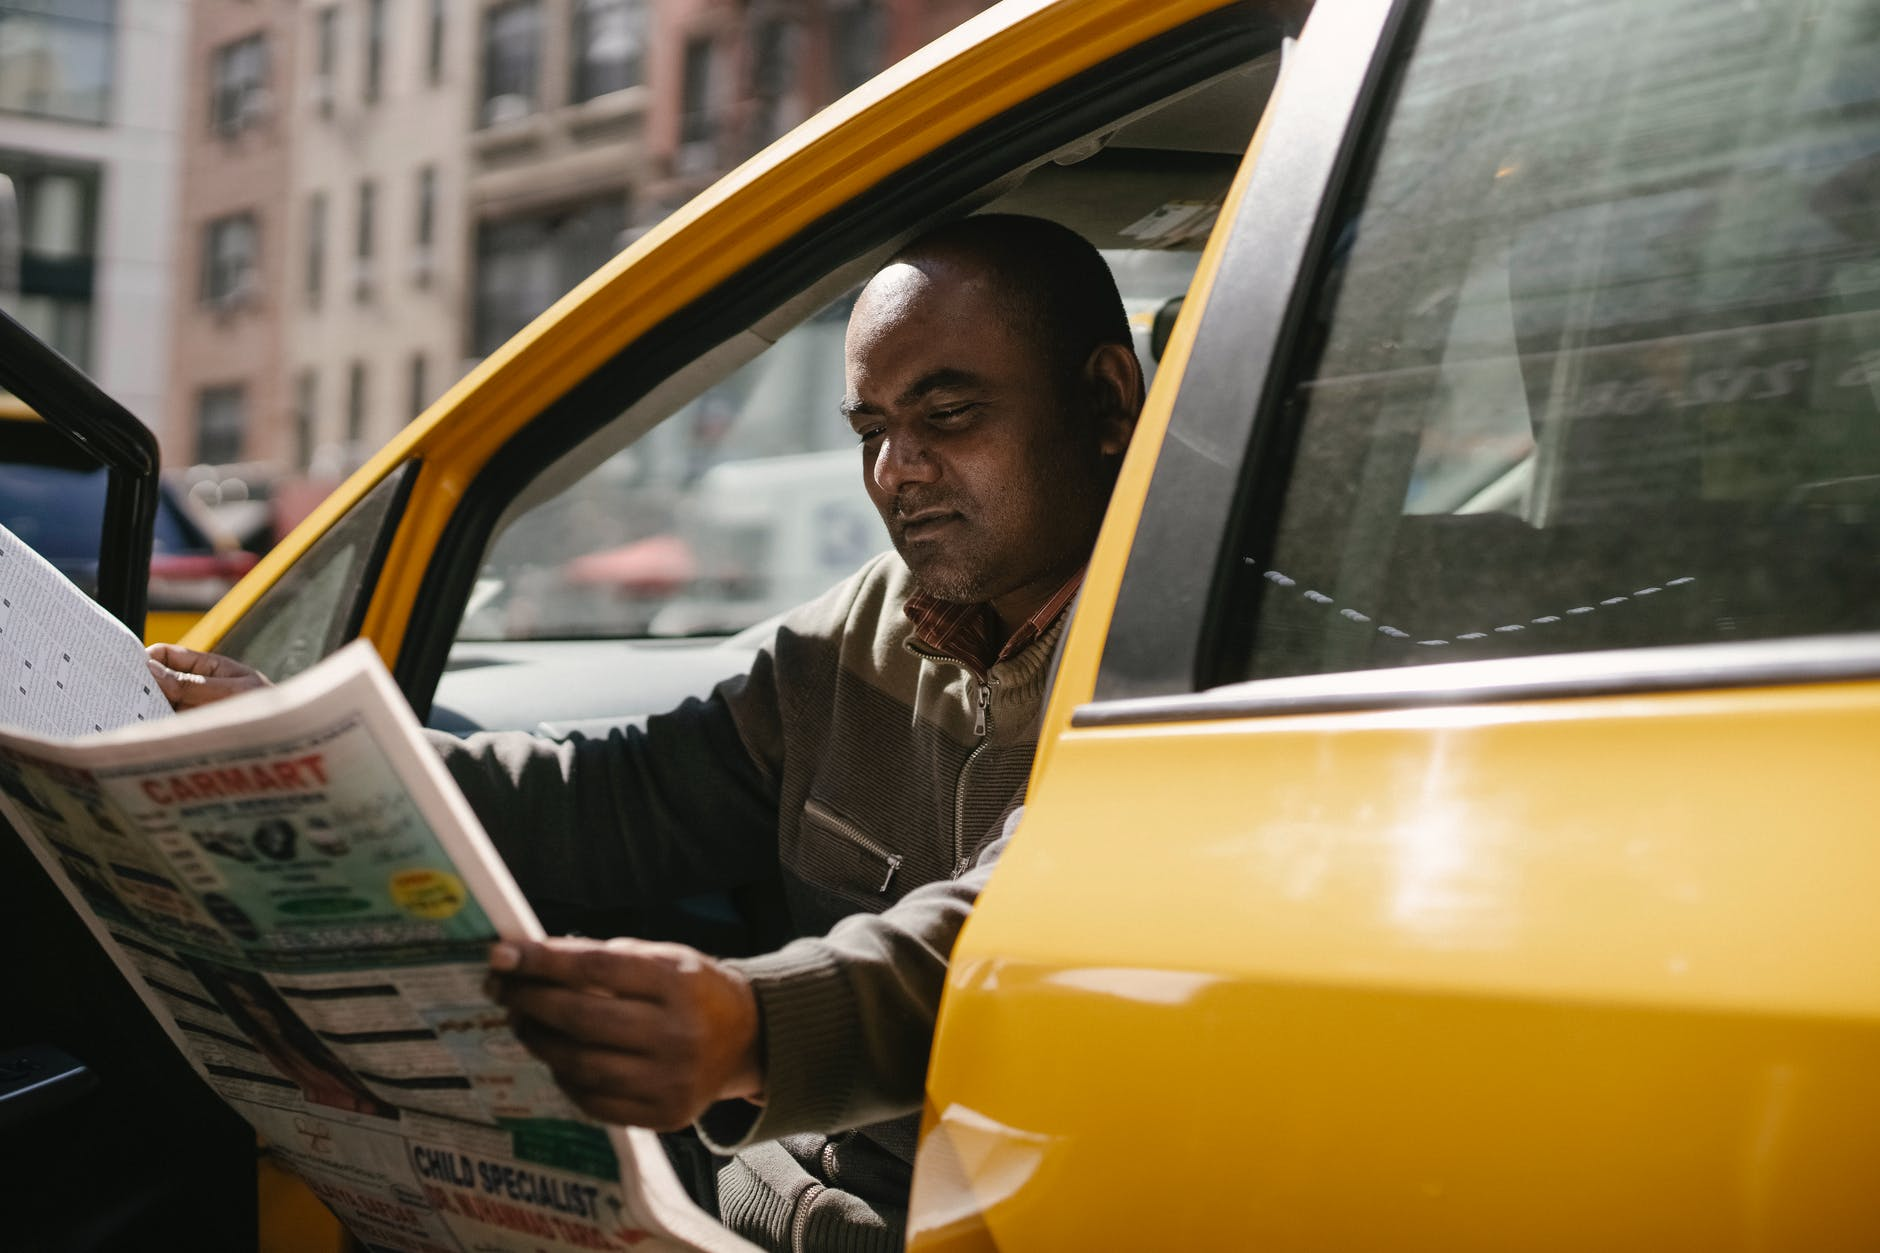 ethnic man sitting in cab with newspaper